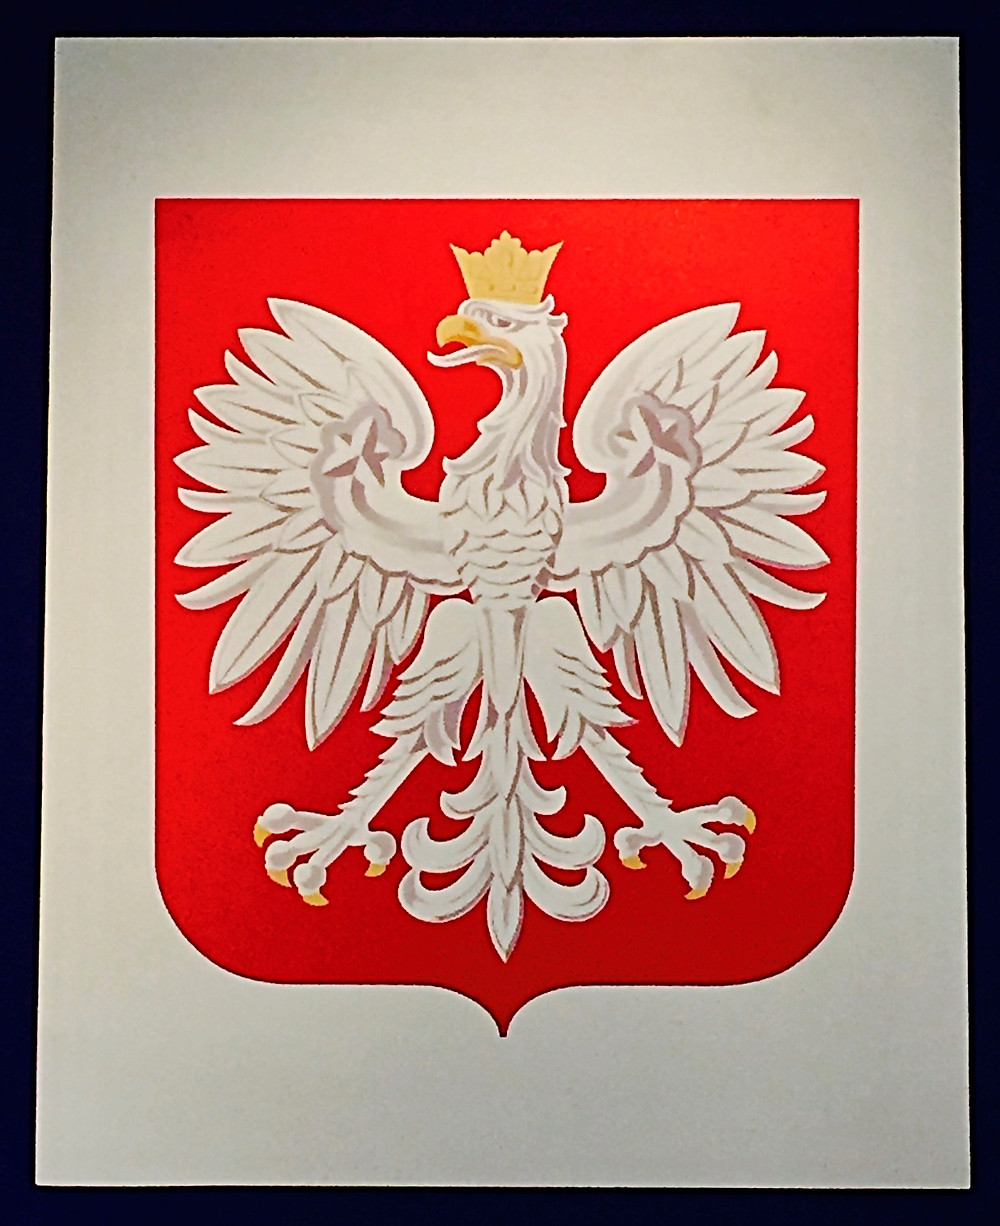 Polish National Emblem - Coat of Arms - White Eagle